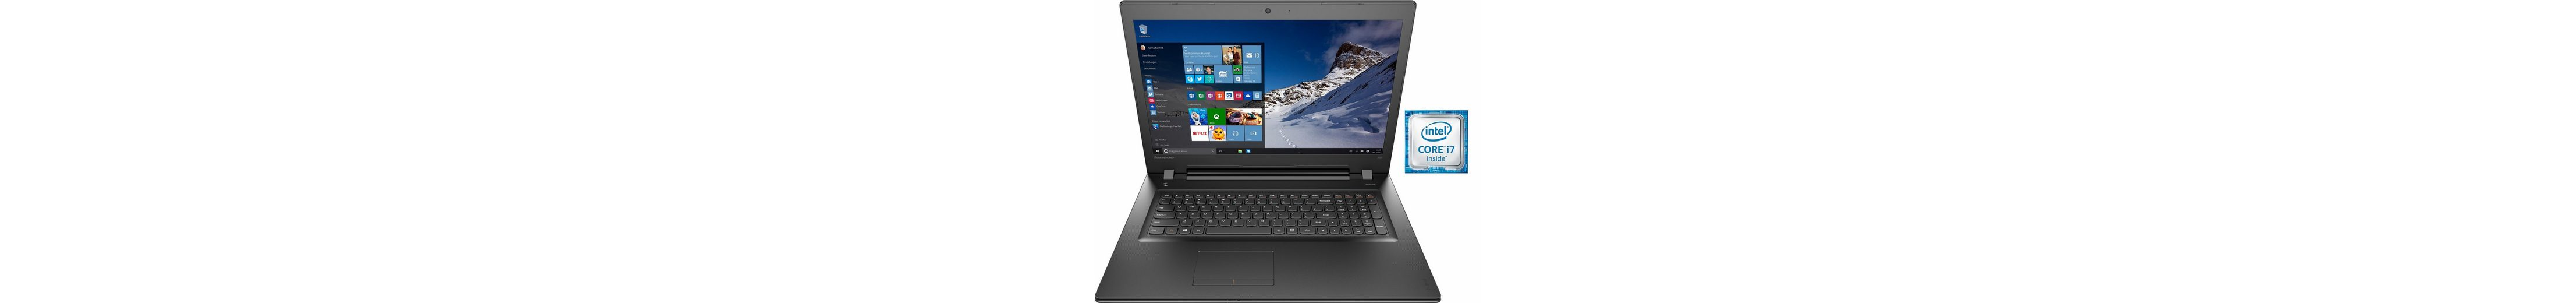 Lenovo IdeaPad 300-17ISK Notebook, Intel® Core™ i7, 43,9 cm (17,3 Zoll), 1000 GB Speicher